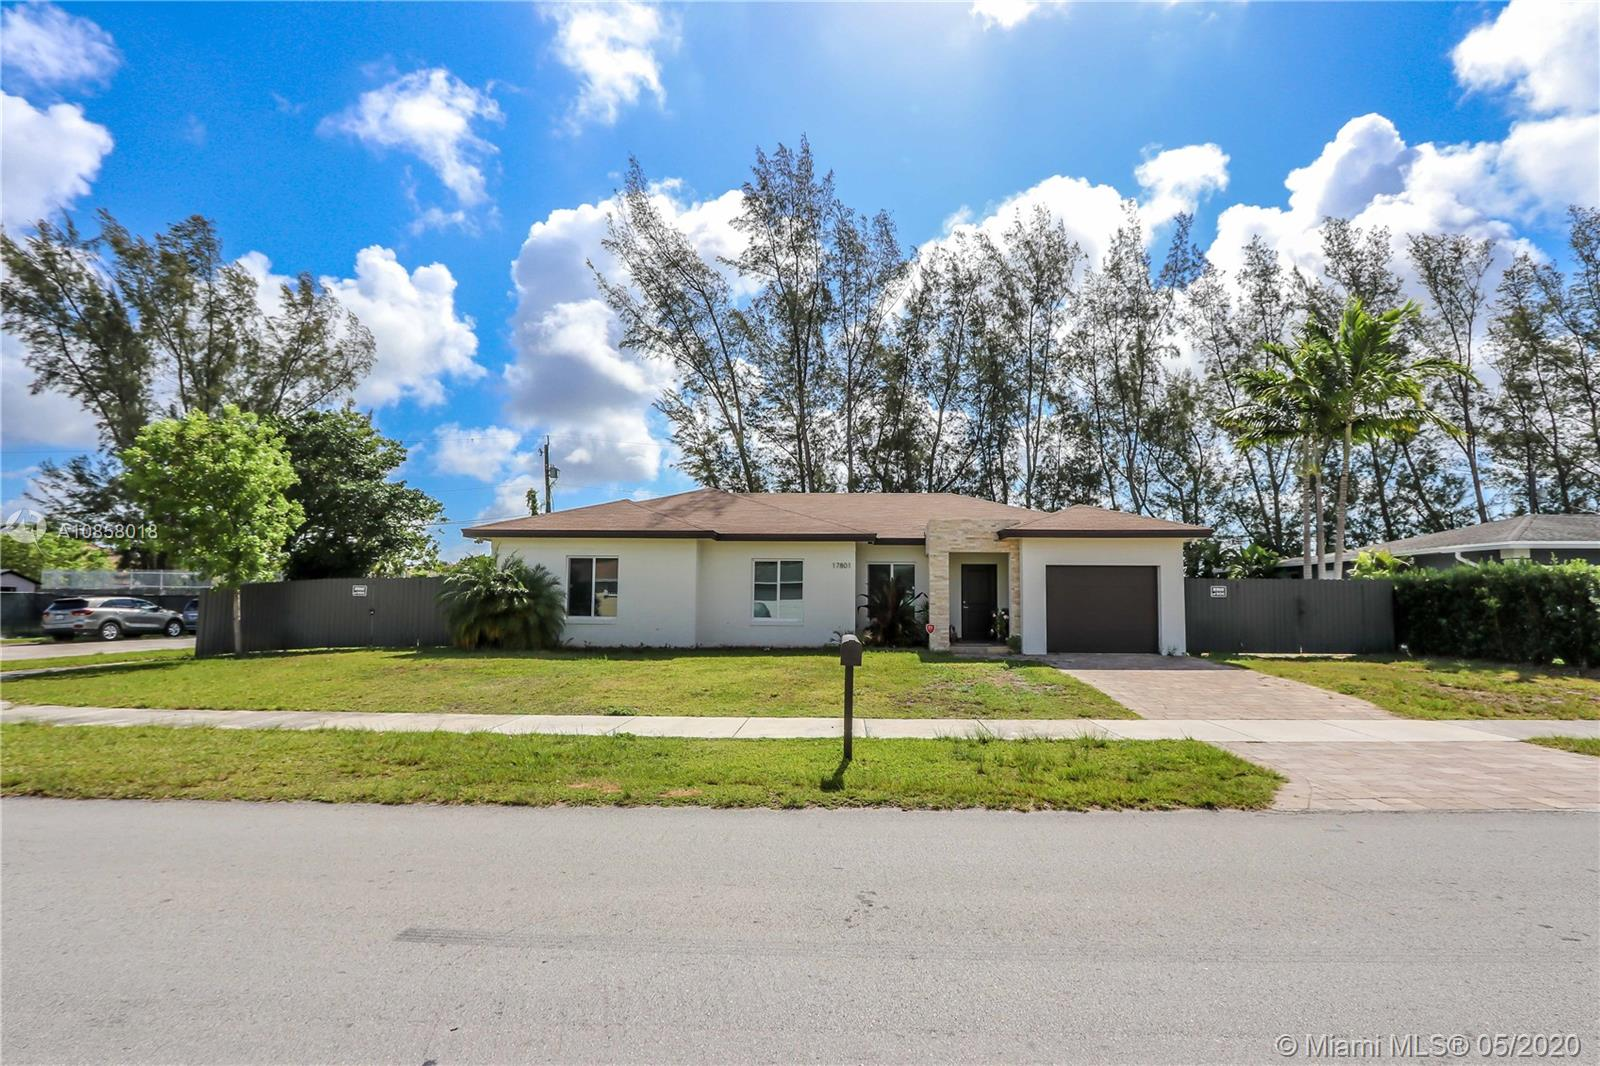 17801 SW 108th Ct, Miami, Florida 33157, 4 Bedrooms Bedrooms, ,3 BathroomsBathrooms,Residential,For Sale,17801 SW 108th Ct,A10858018